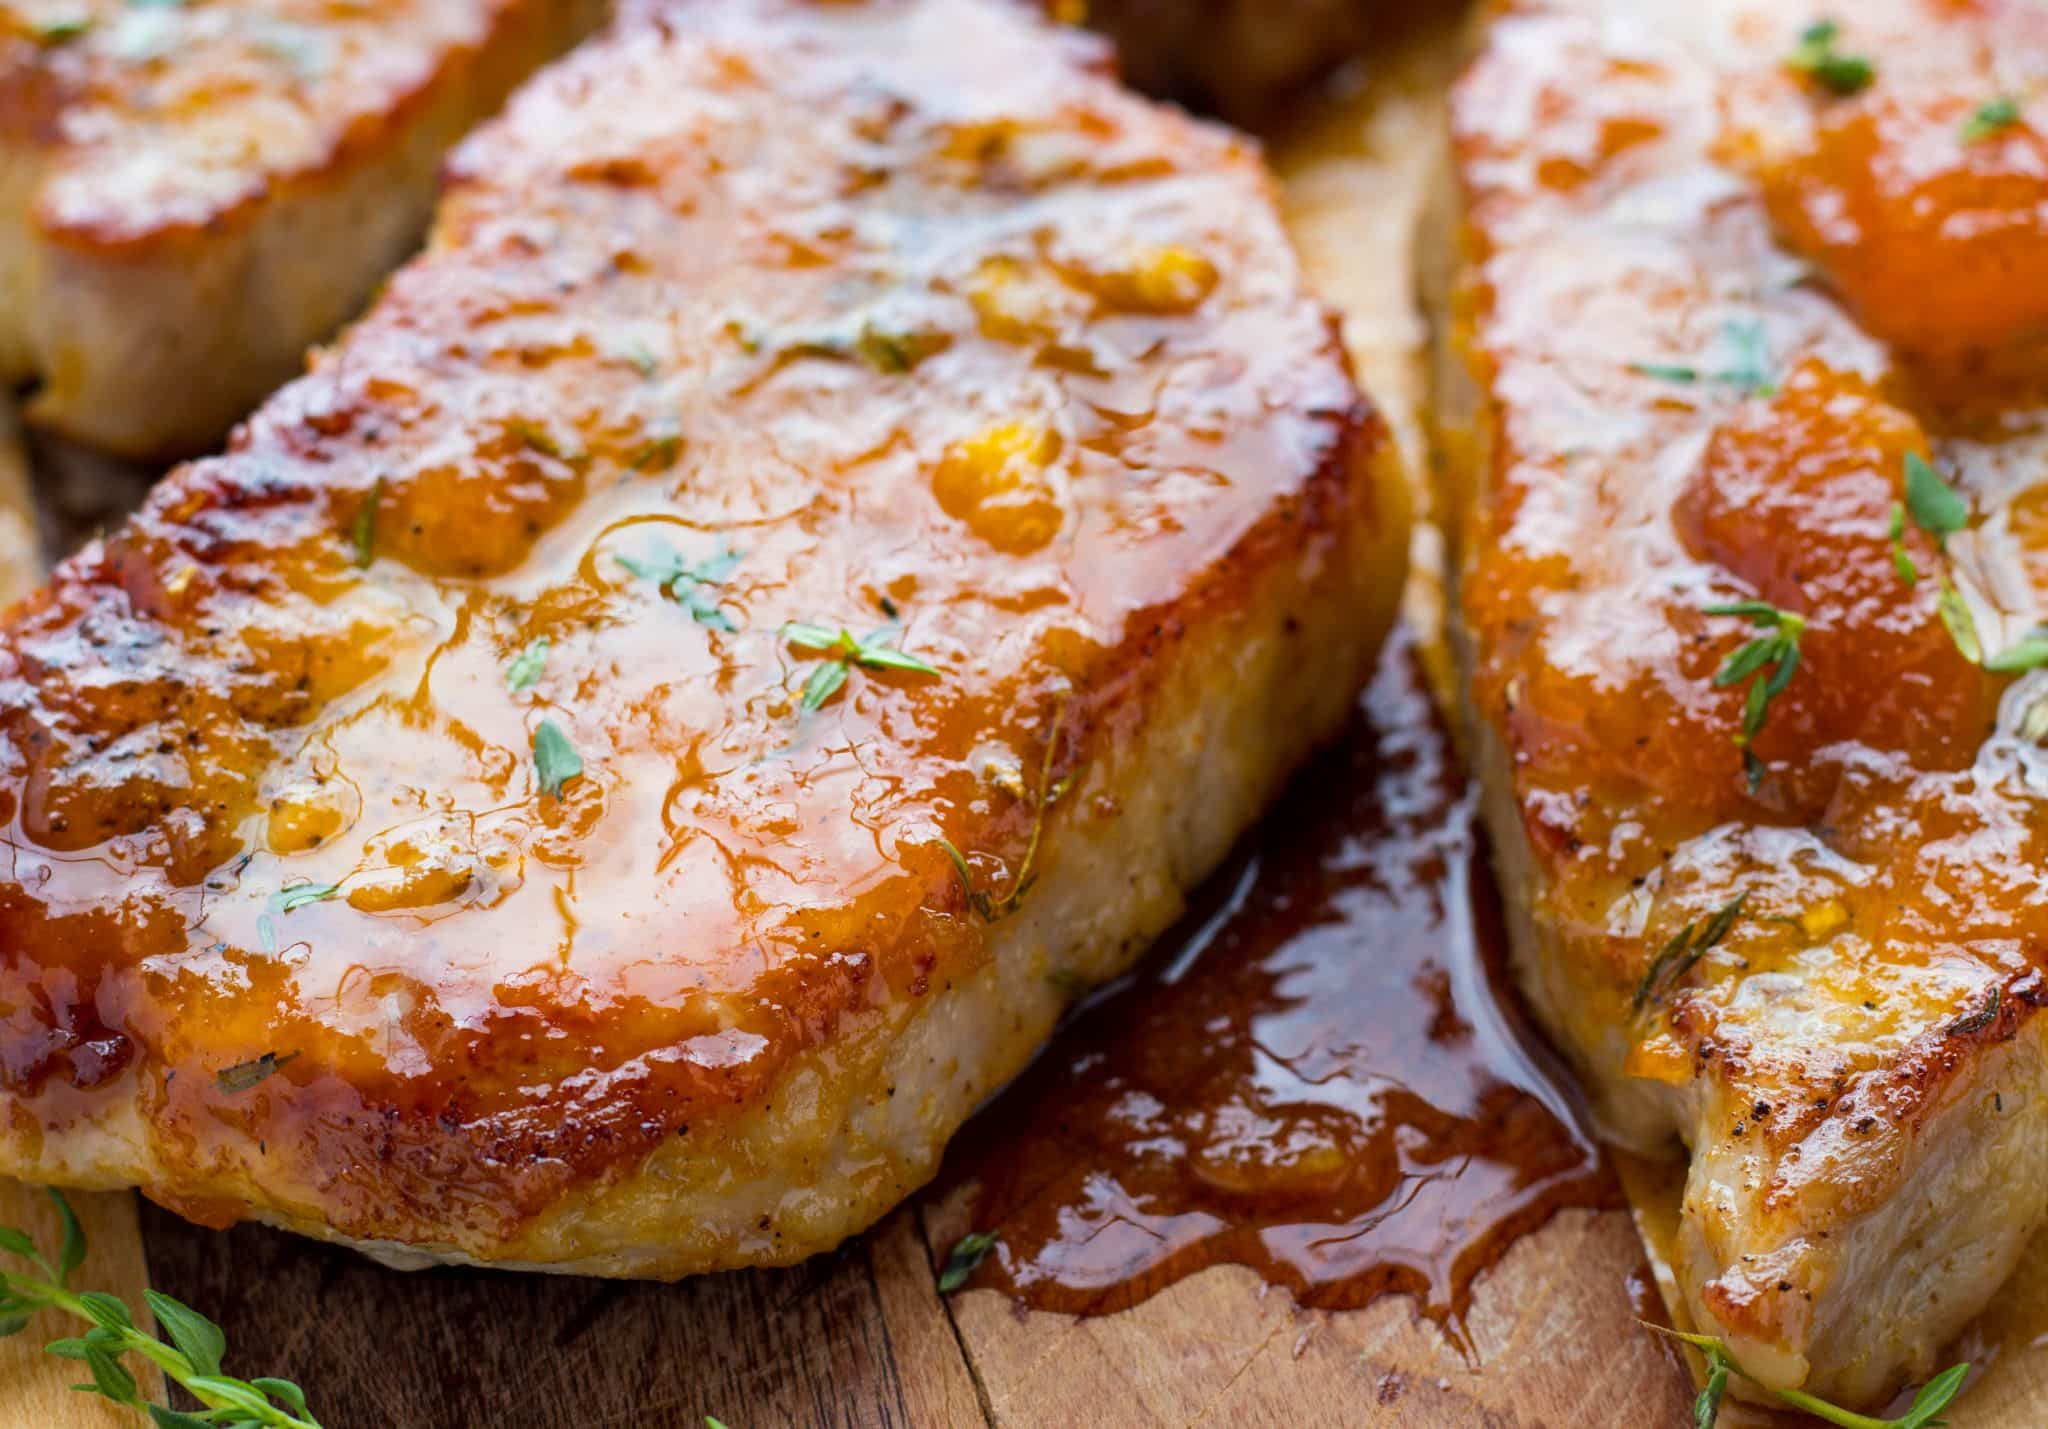 Make tender Easy Apricot Ginger Steakhouse Pork Chops in 30 min and enjoy affordable steakhouse pork chops at home with this easy-to-make recipe!